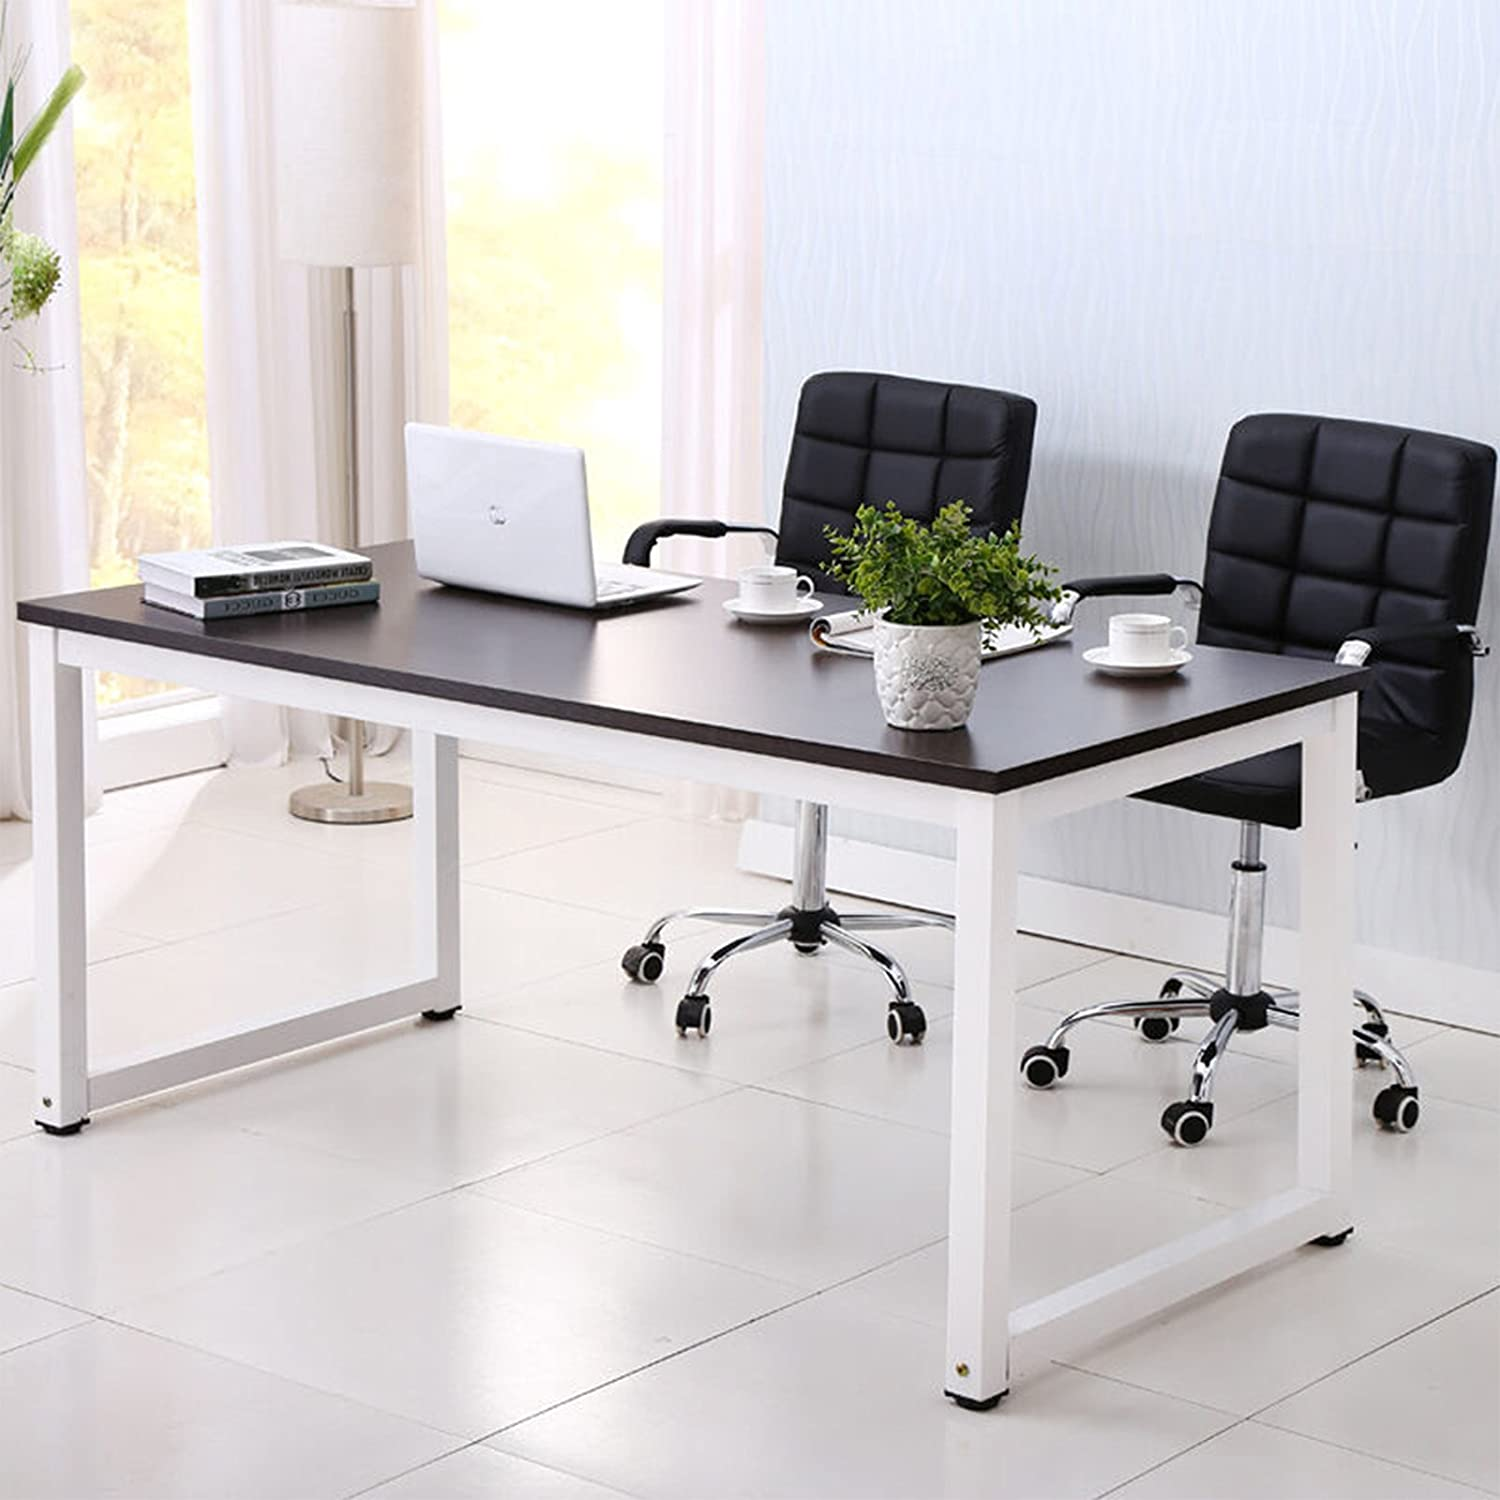 Amazon com mecor 43large mdf computer office desk pc laptop table study work station home office furniture black kitchen dining